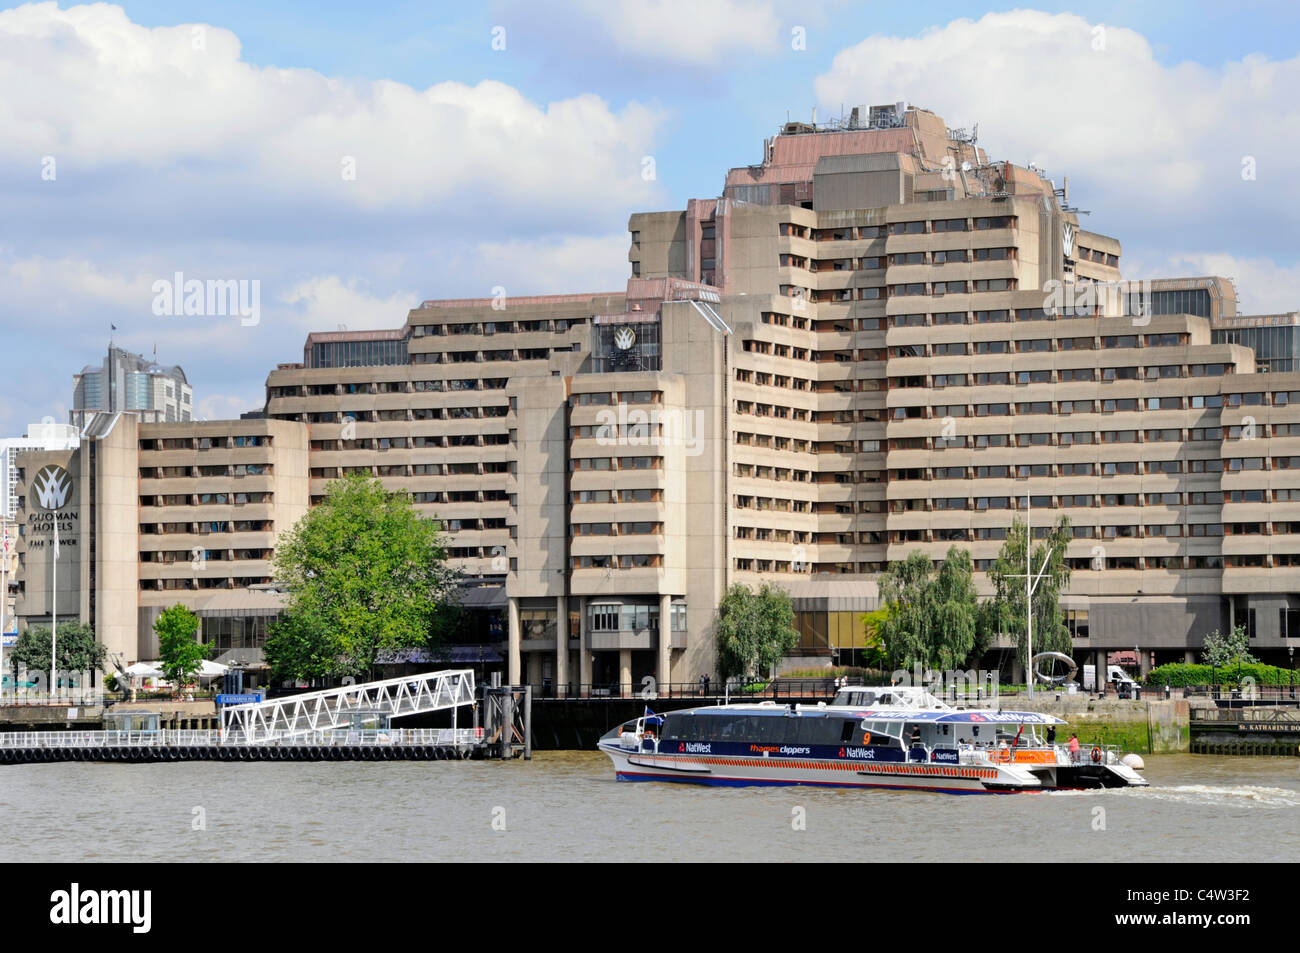 Thames clipper commuter tourism public transport passenger boat at St Katharines Pier & Guoman Hotel on River - Stock Image